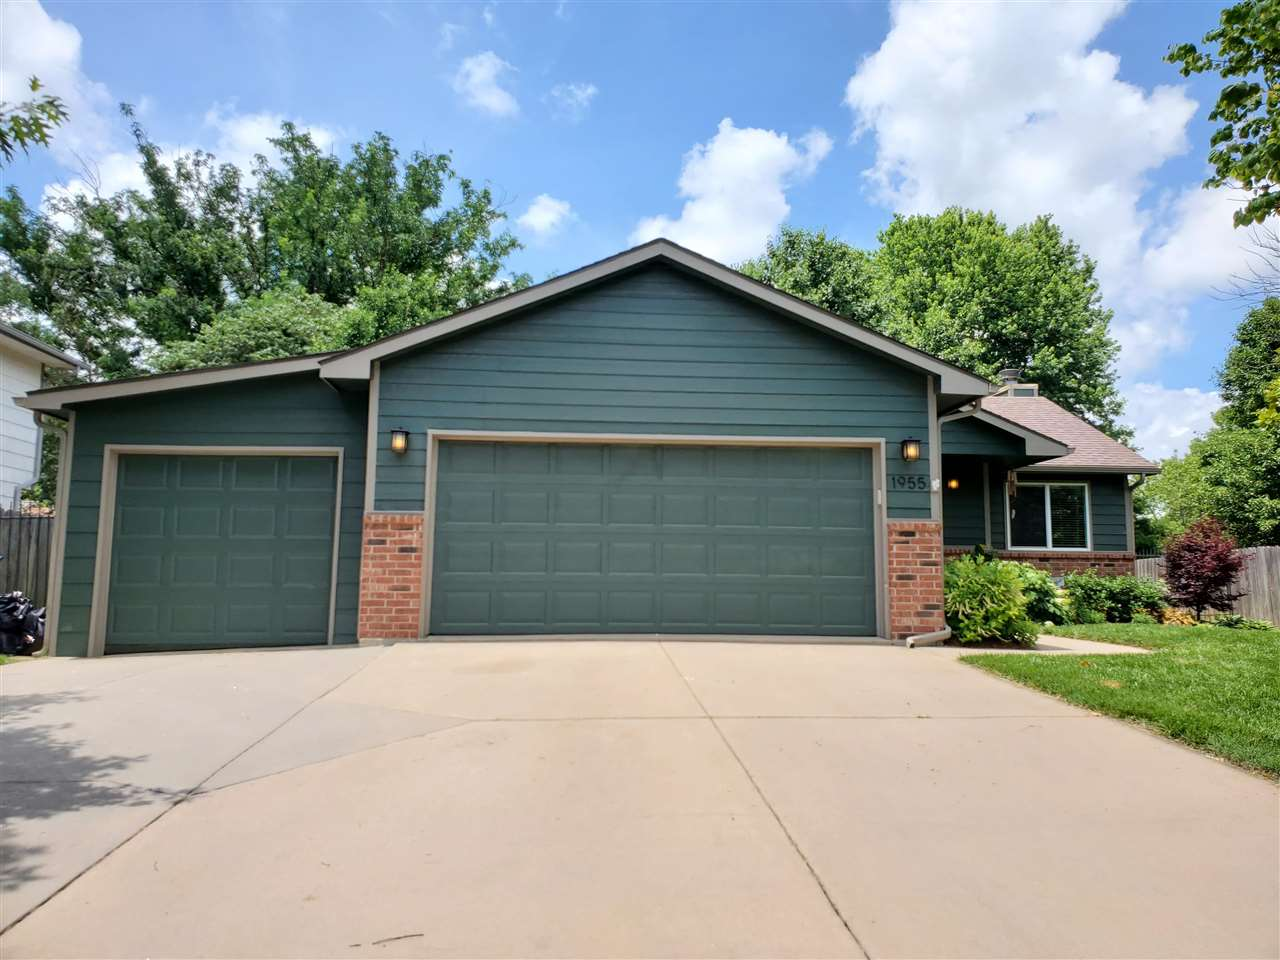 SO MANY UPDATES!! You won't find another home this LOVED and UPDATED! Cozy 4 bedroom, 2 bath with 3